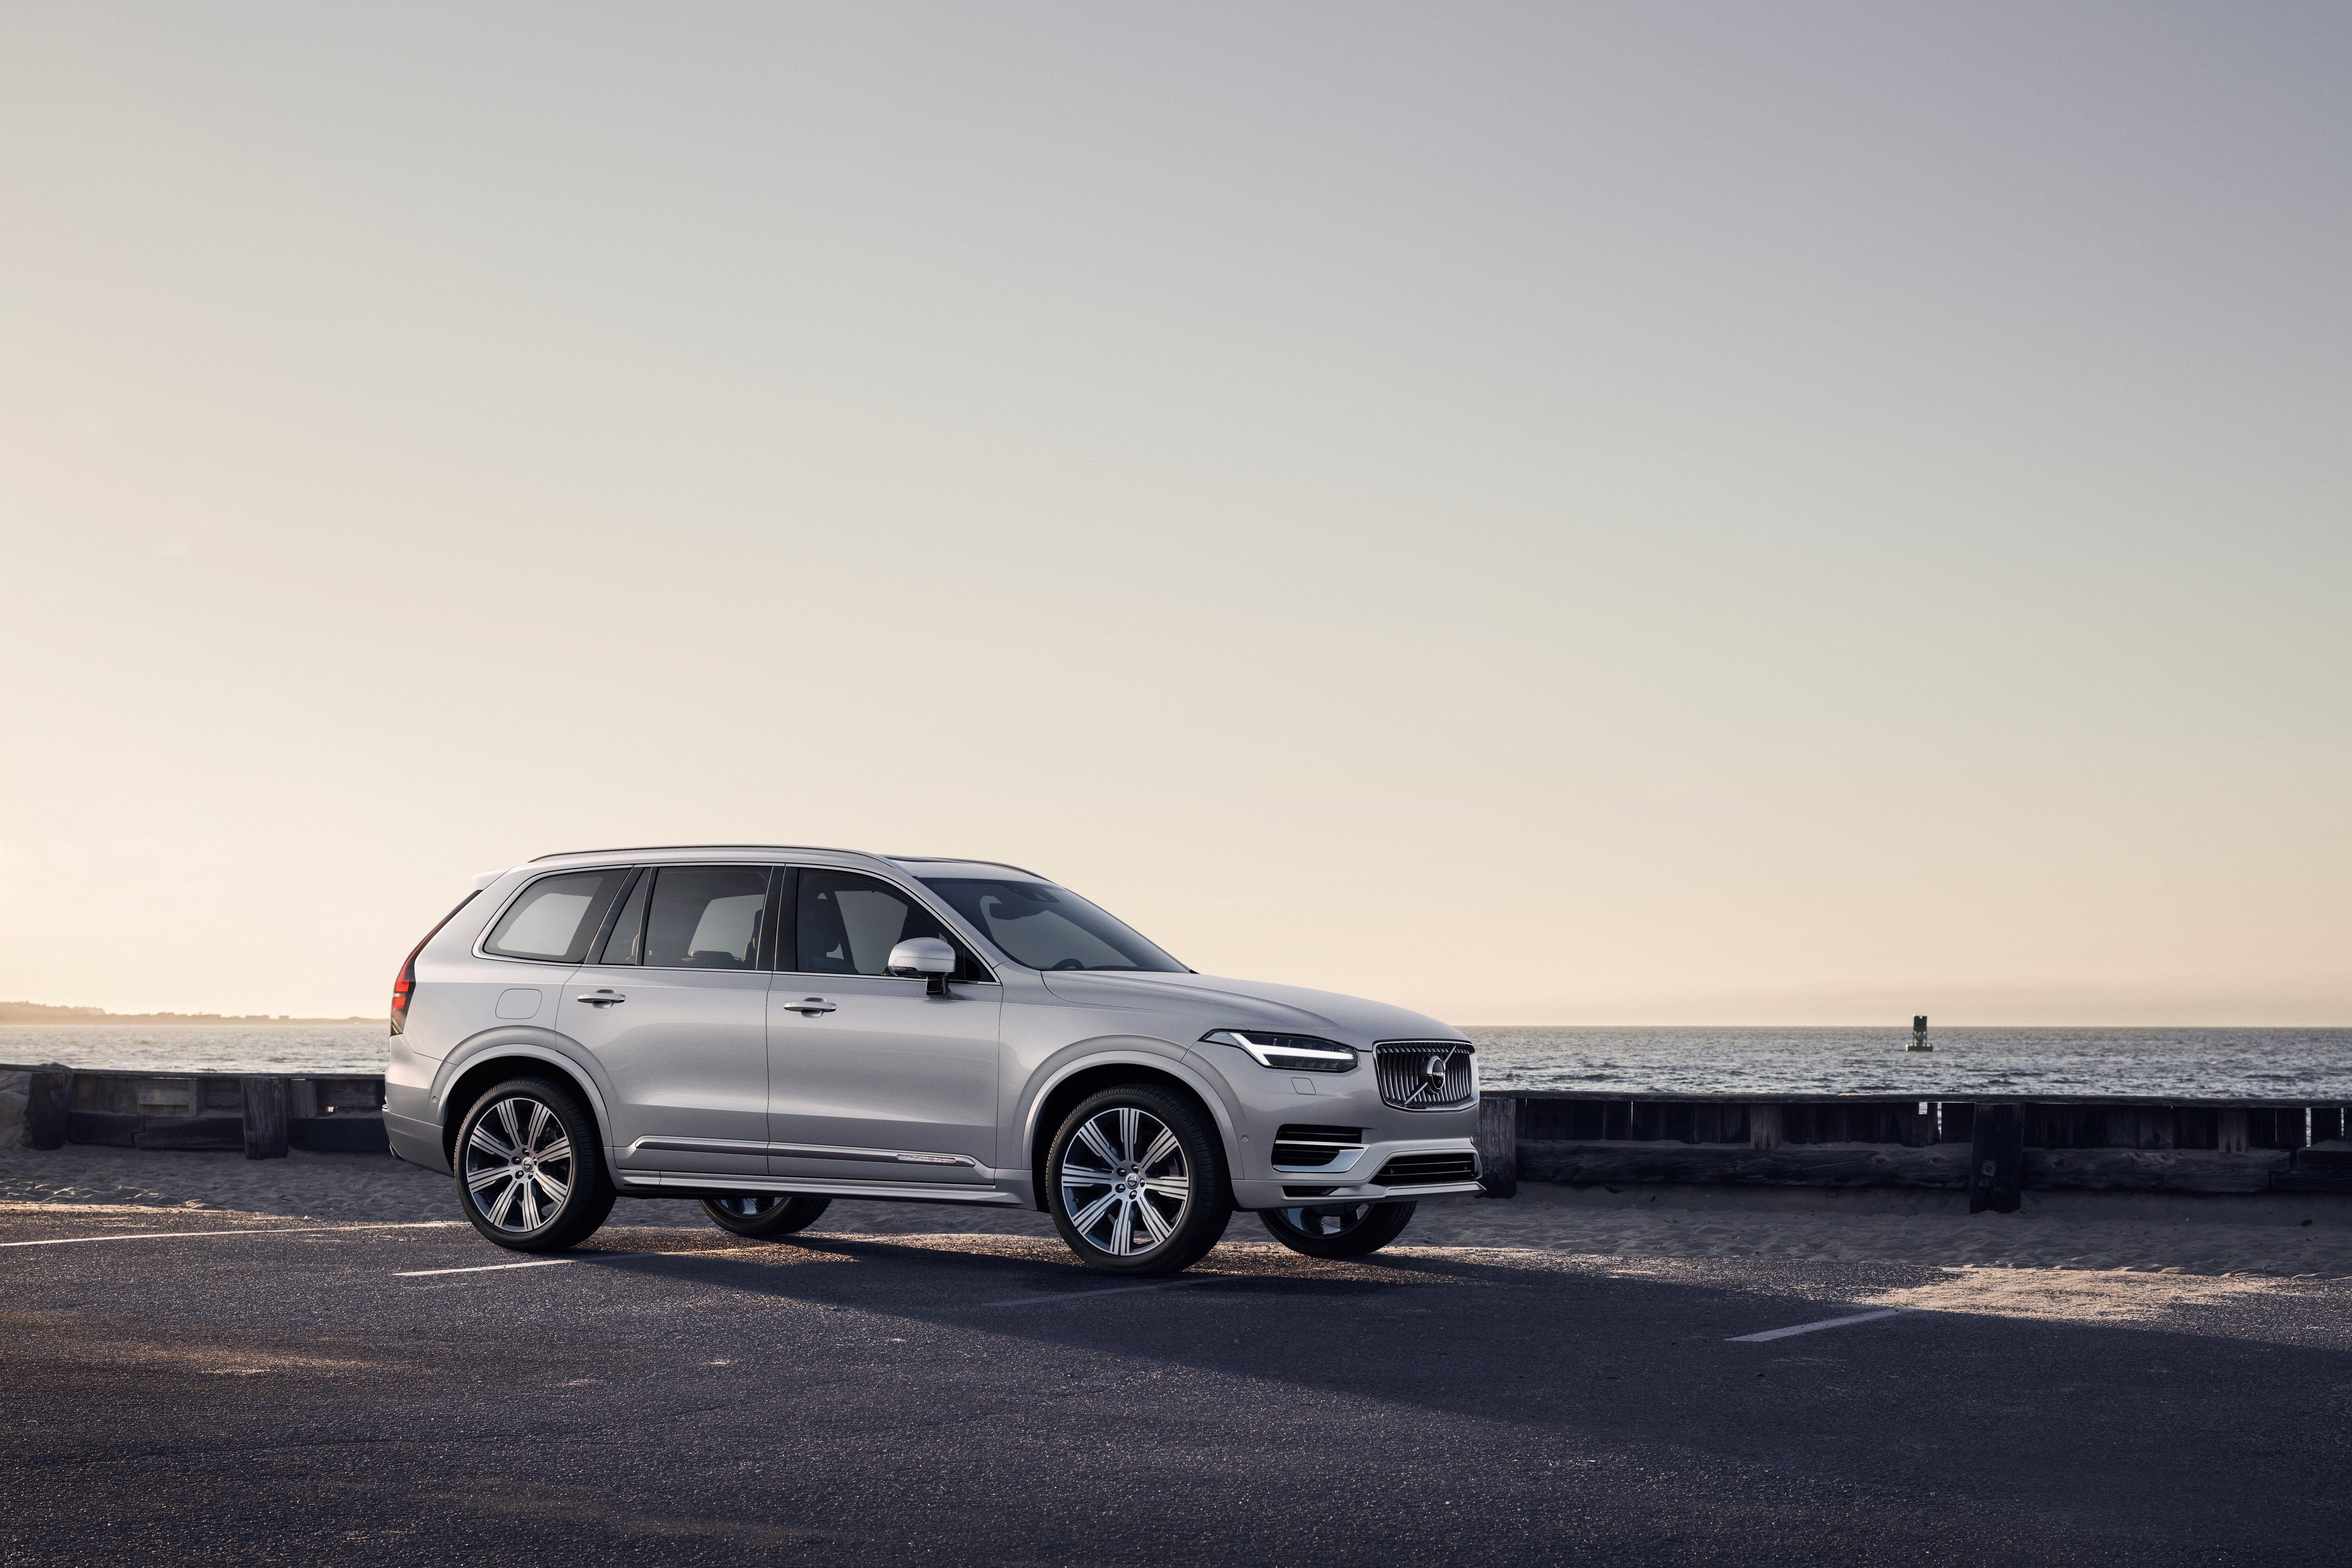 2020 Volvo Xc90 Minor Styling Changes And New Hybrids